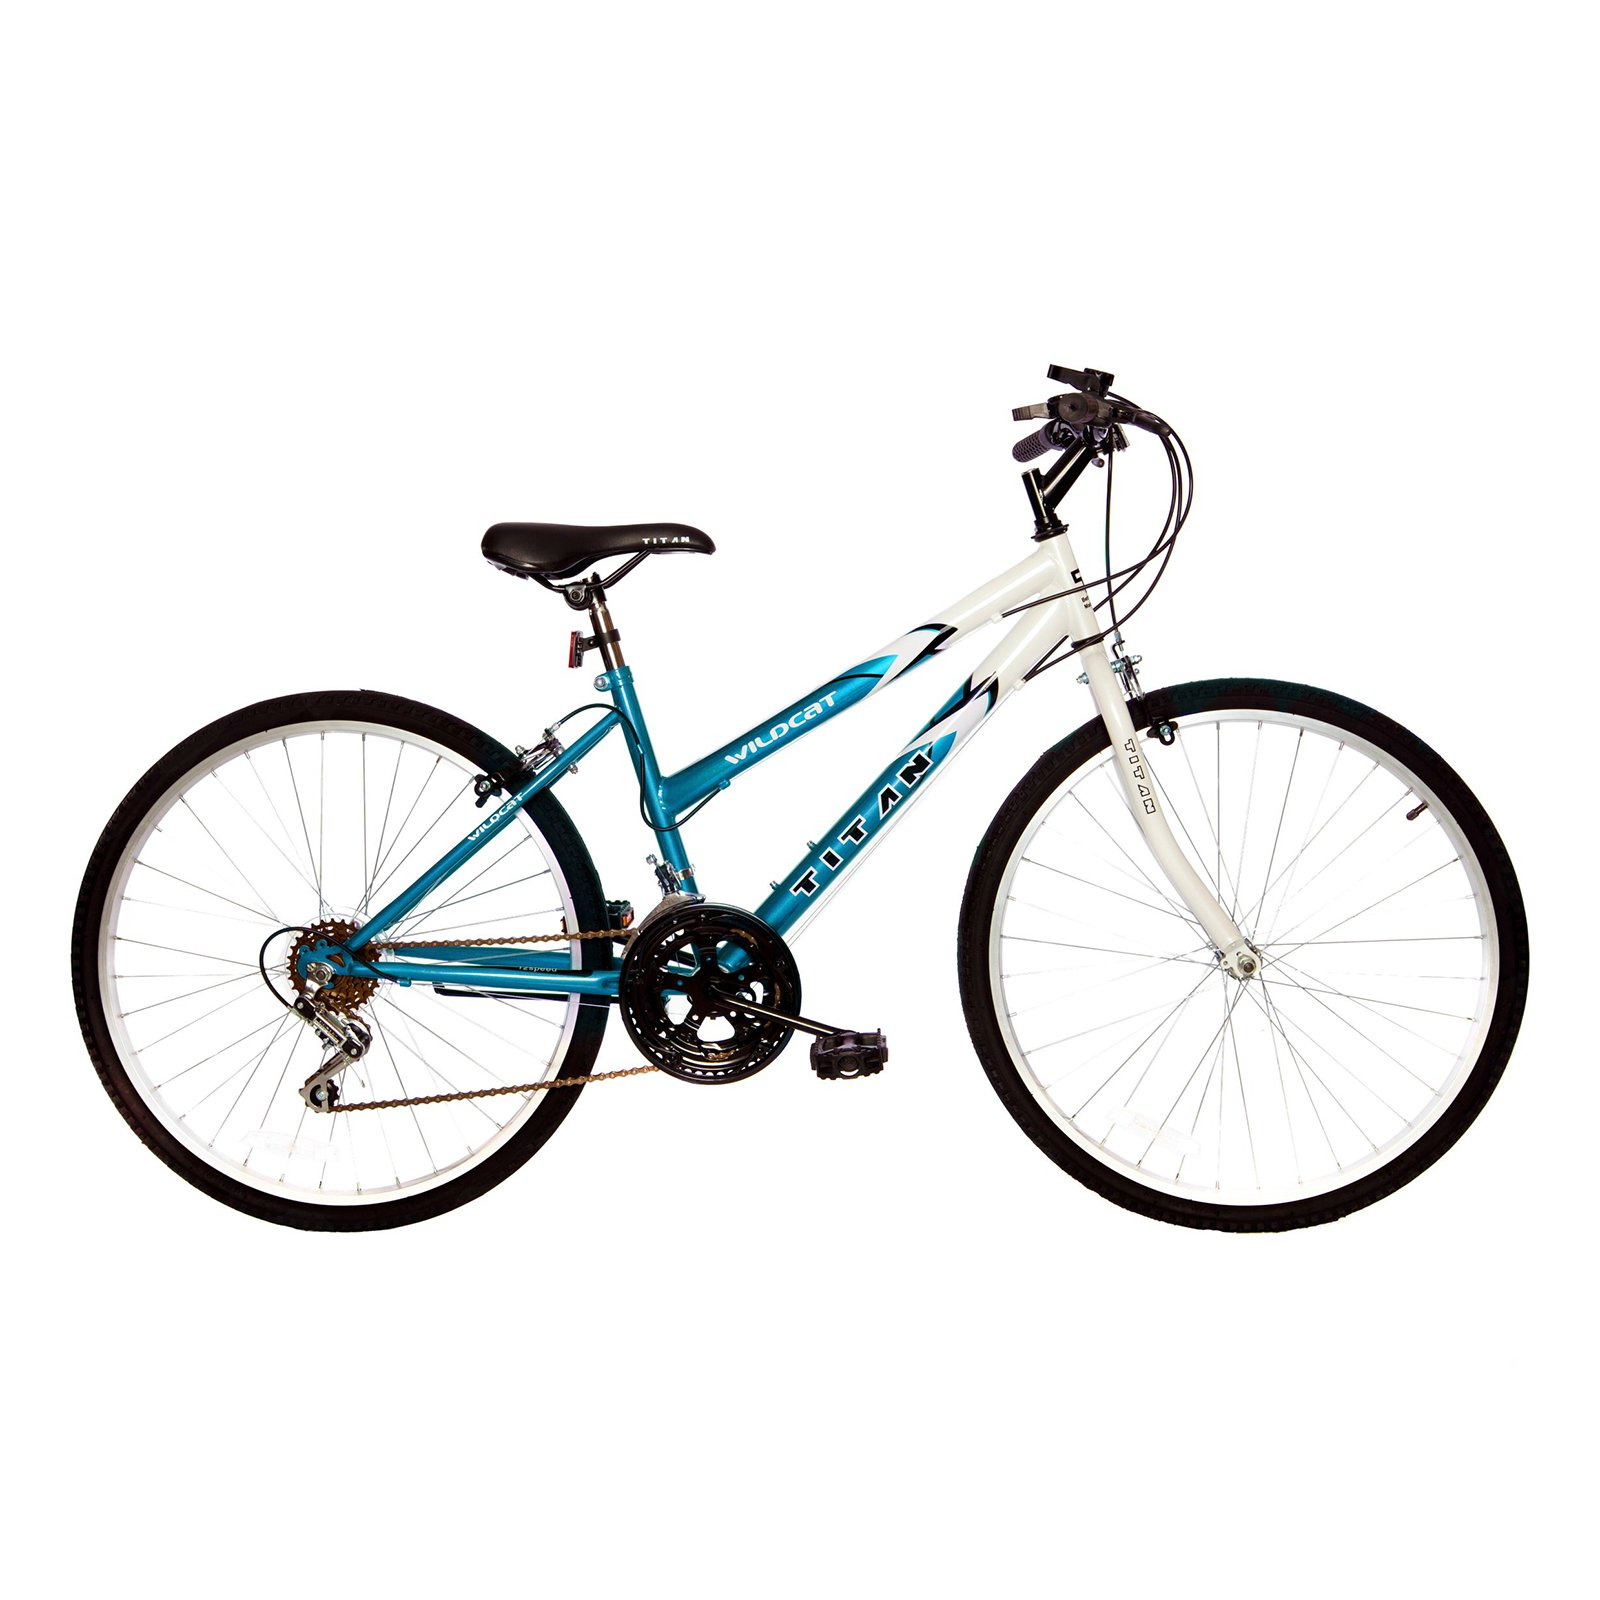 Titan Wildcat 12-Speed Women's Mountain Bike, Blue & White